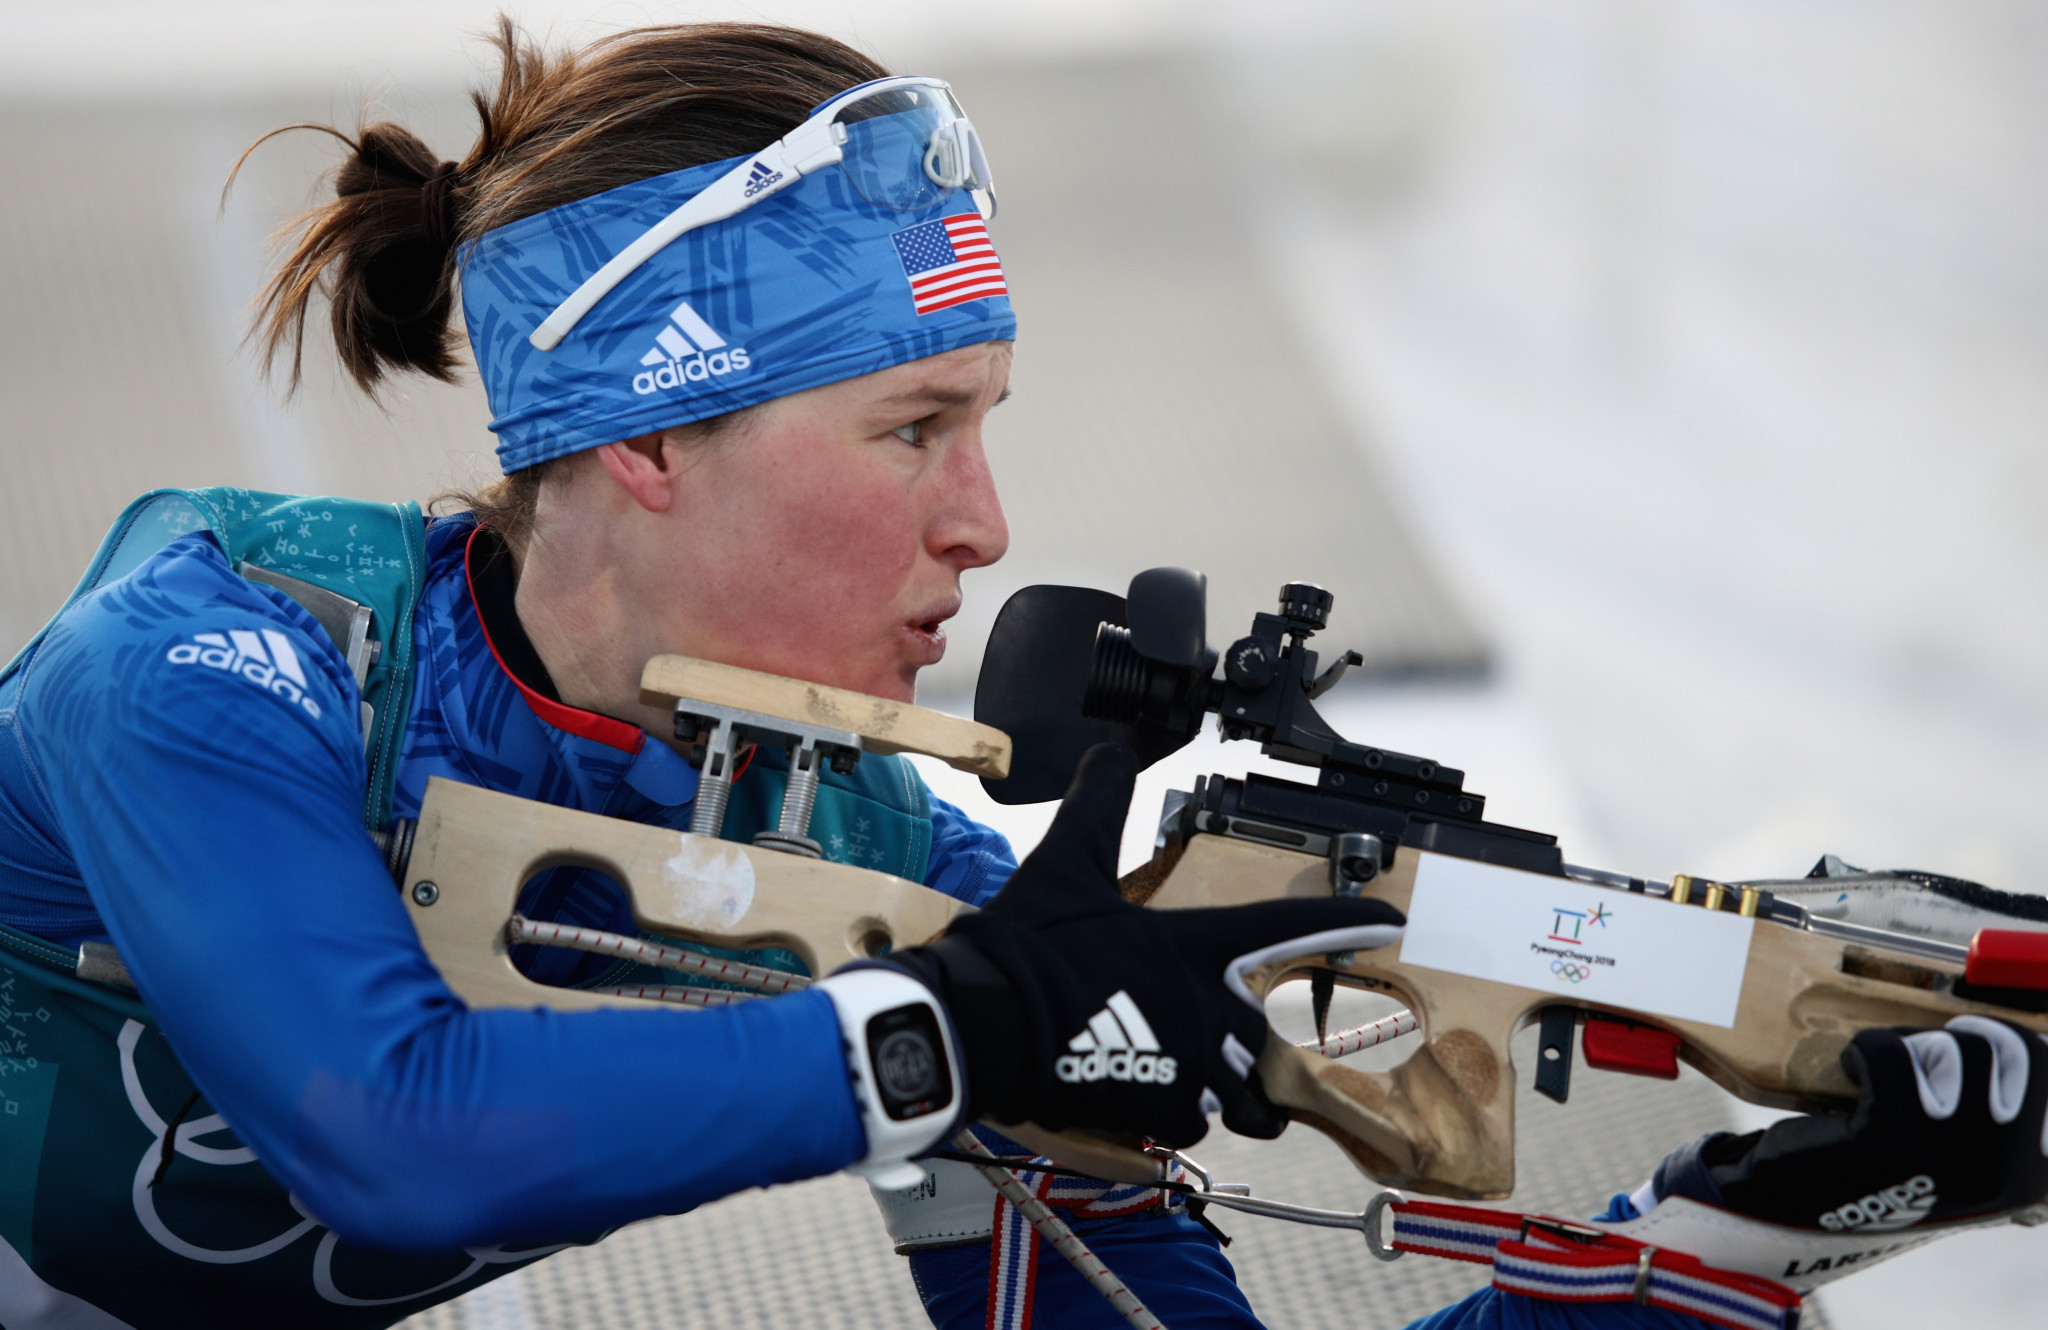 Clare Egan represented the United States at Pyeongchang 2018 ©Getty Images